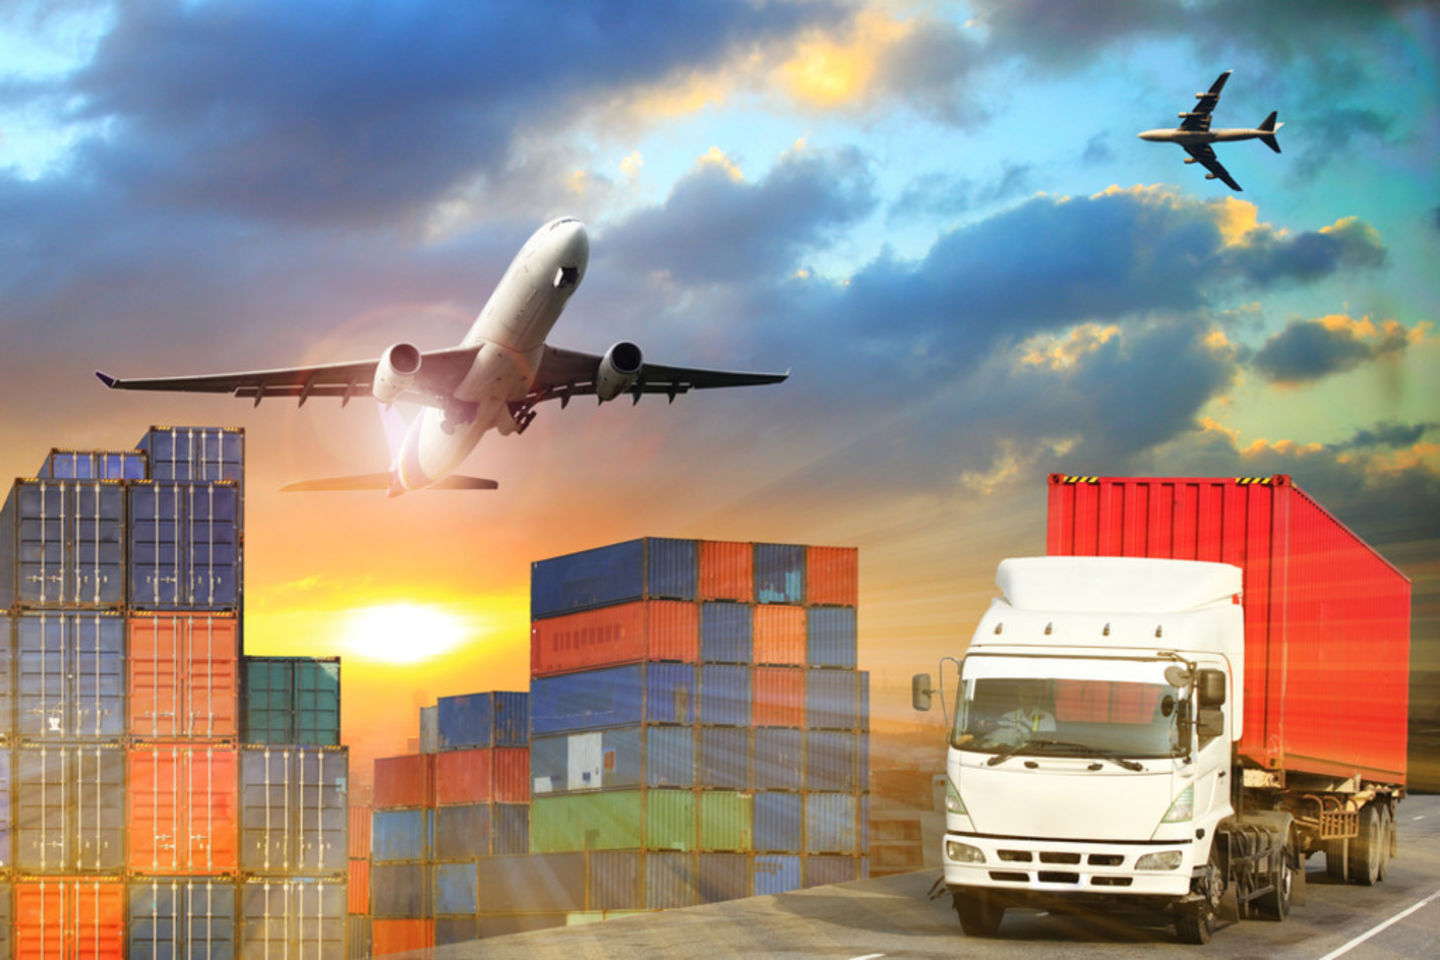 Mach Air Cargo Air Cargo Services In Dubai Airport Free Zone Dubai International Airport Dubai